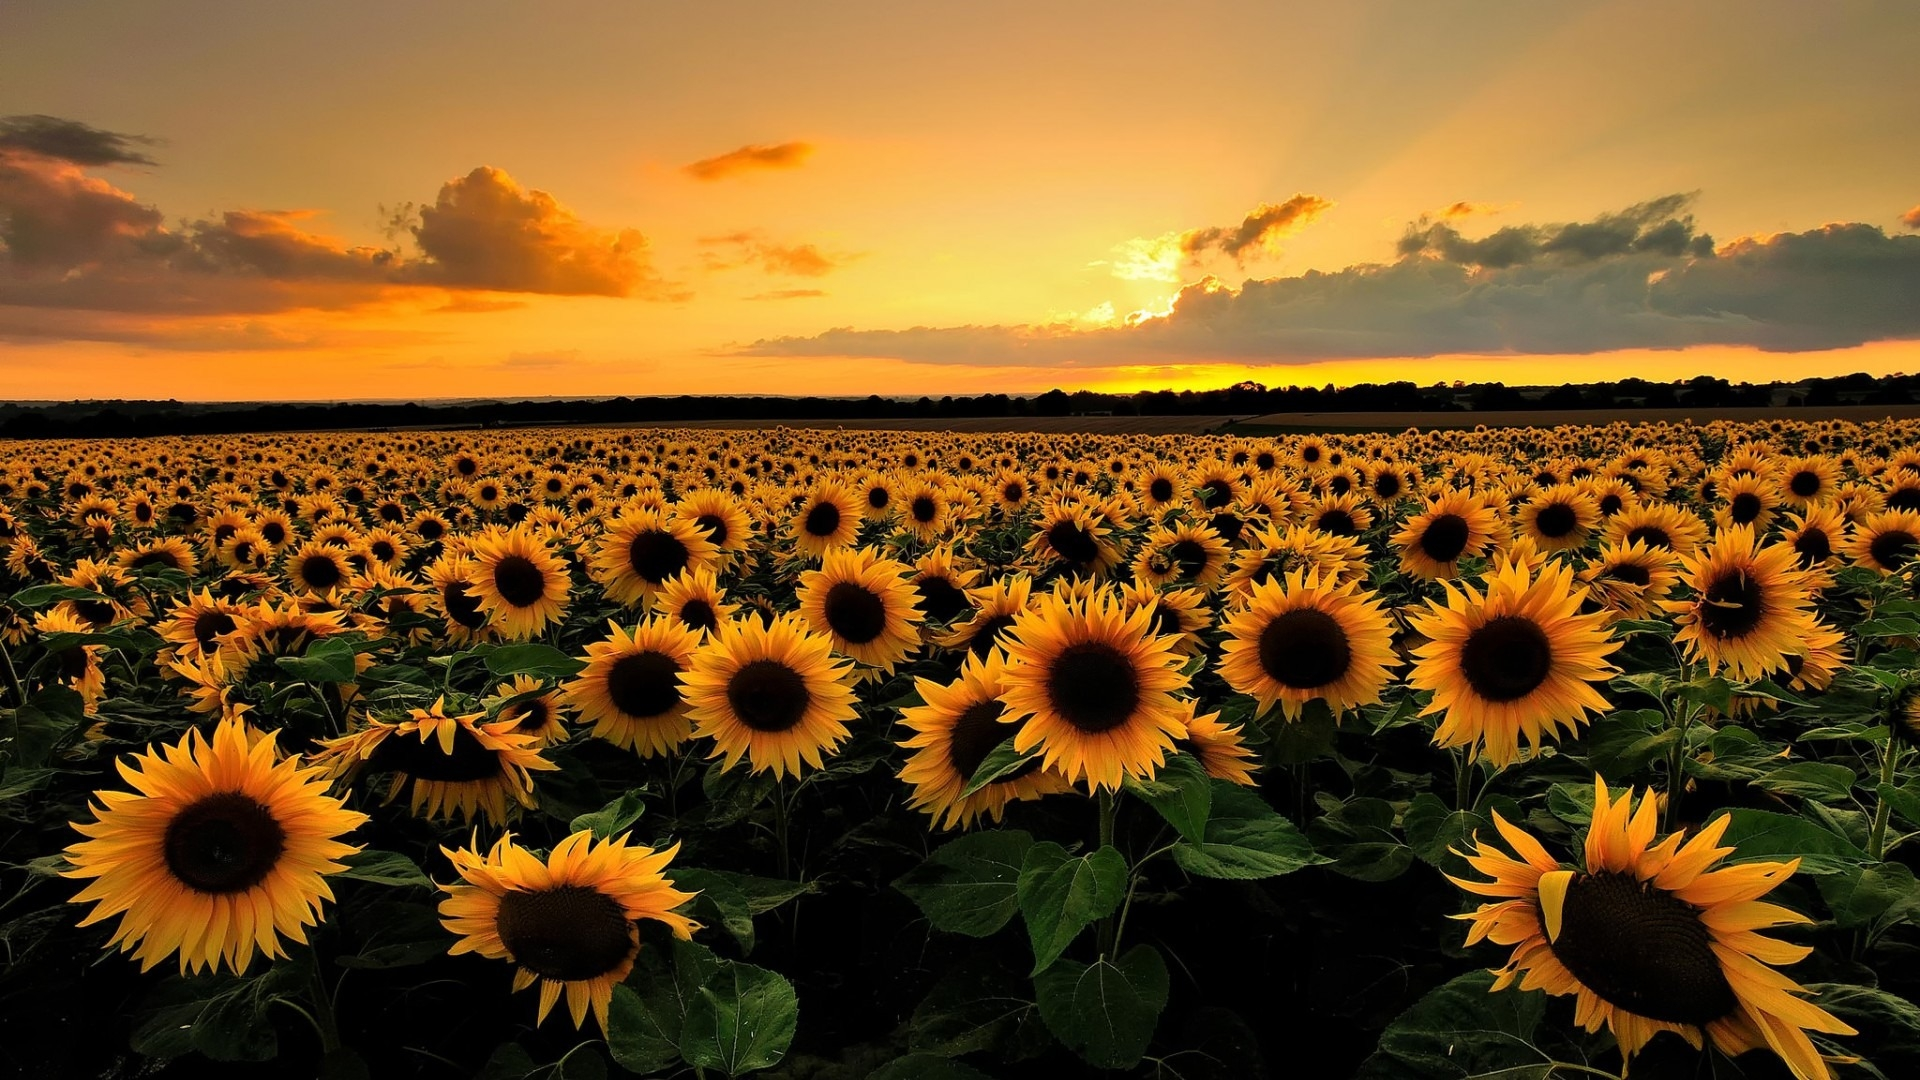 desktop-backgrounds-sunflowers-Download-Lovely-Sunflowers-Hd-Images-New-regarding-desk-wallpaper-wp3804482